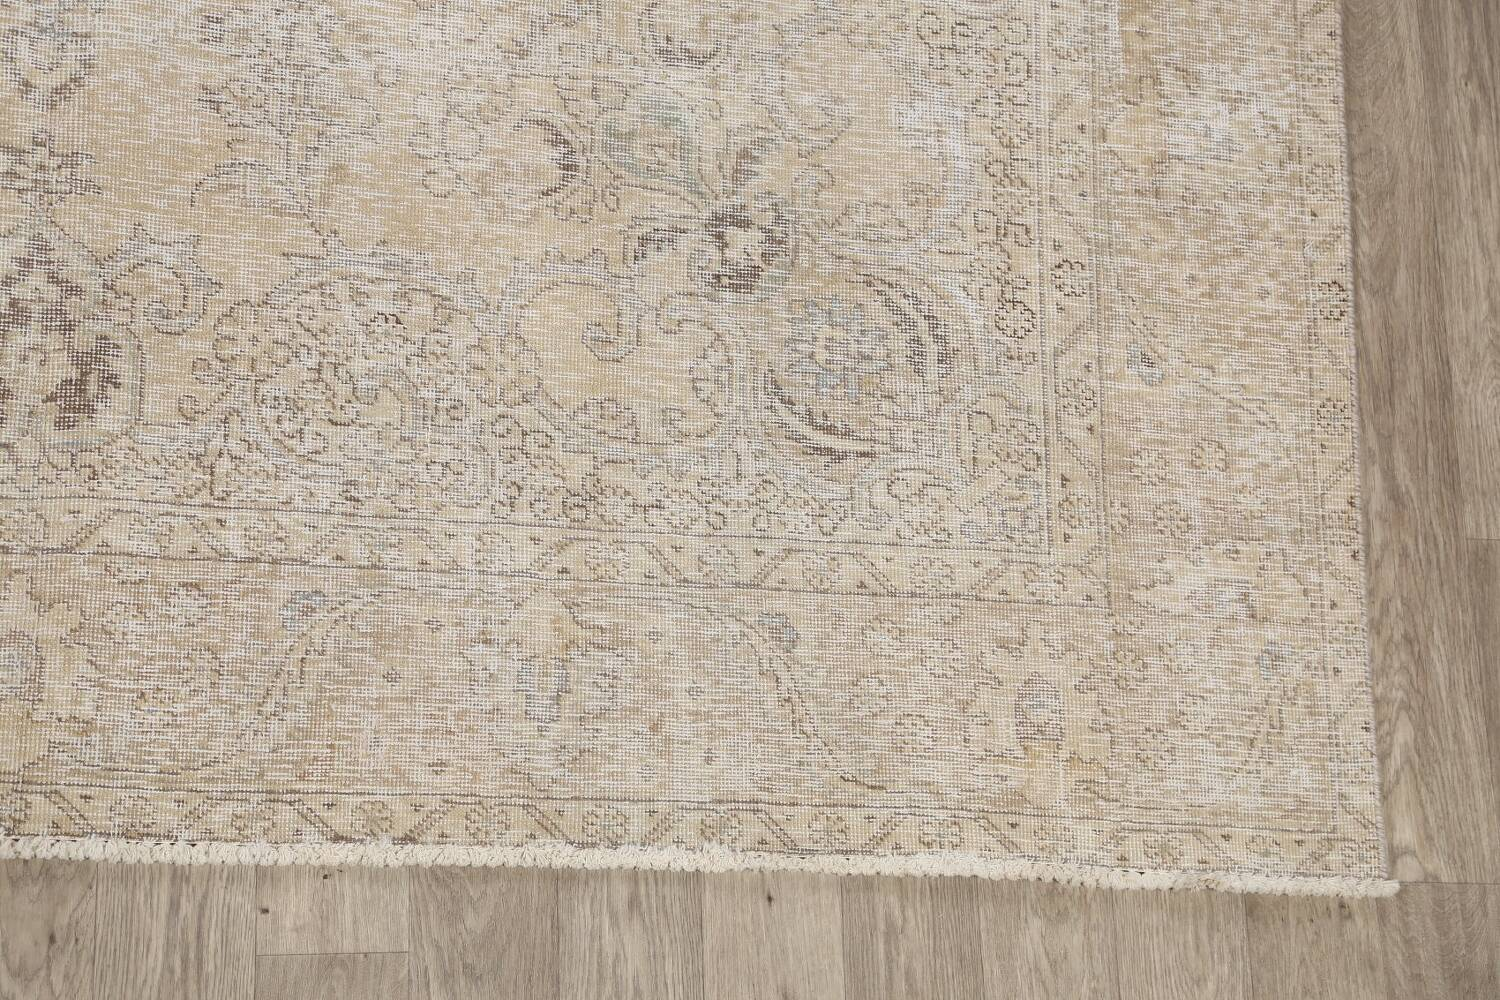 Antique Muted Floral Tabriz Persian Area Rug 9x13 image 5